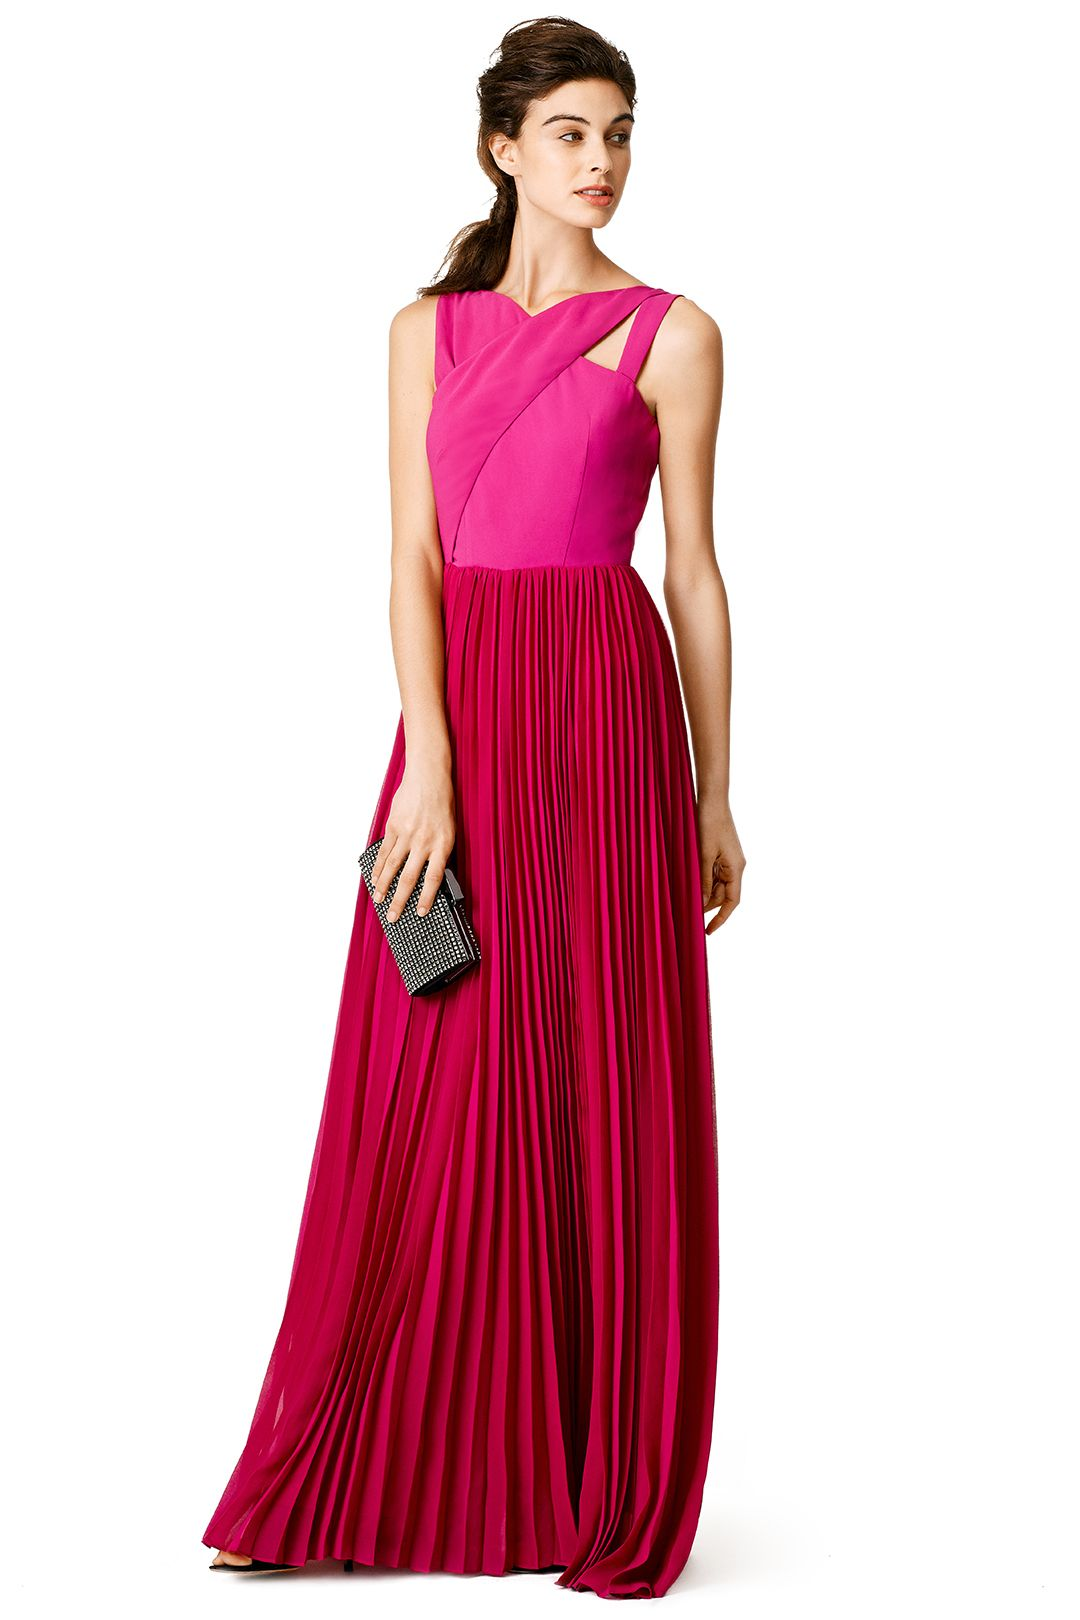 Fuchsia Cross Gown   Gowns, Formal gowns and Formal